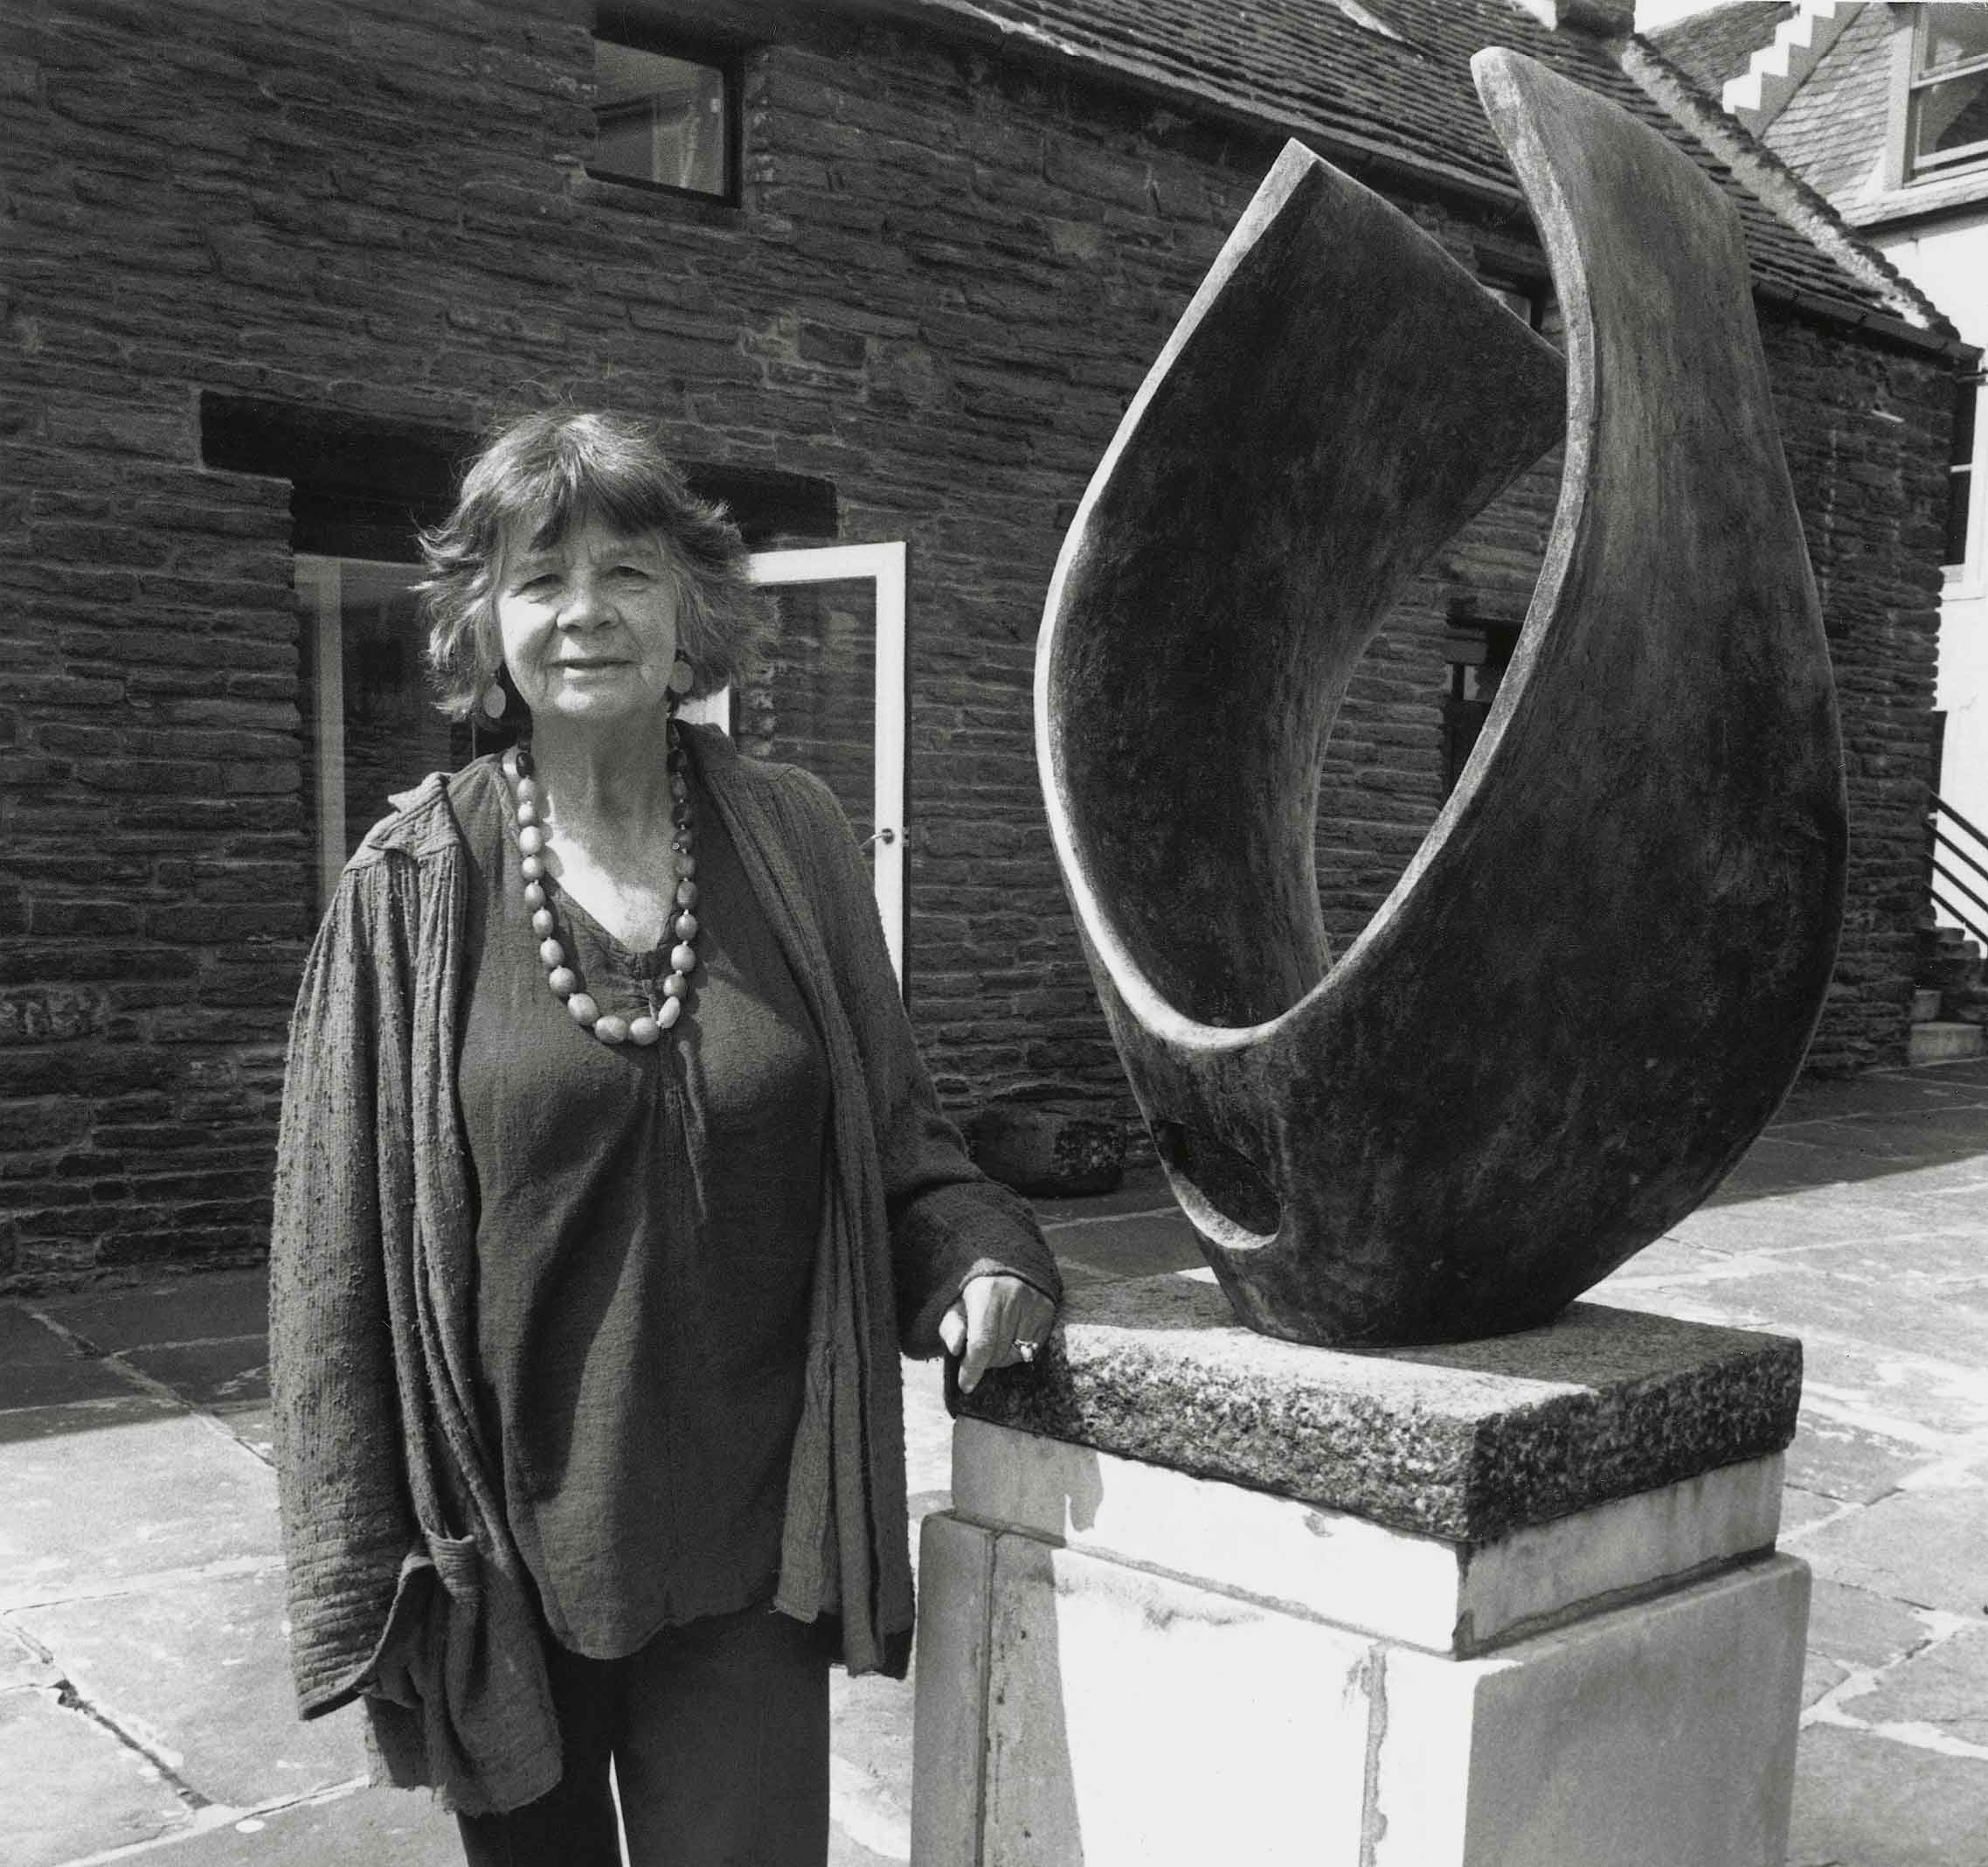 Founder of the Pier Arts Centre, Margaret Gardiner c. 1980